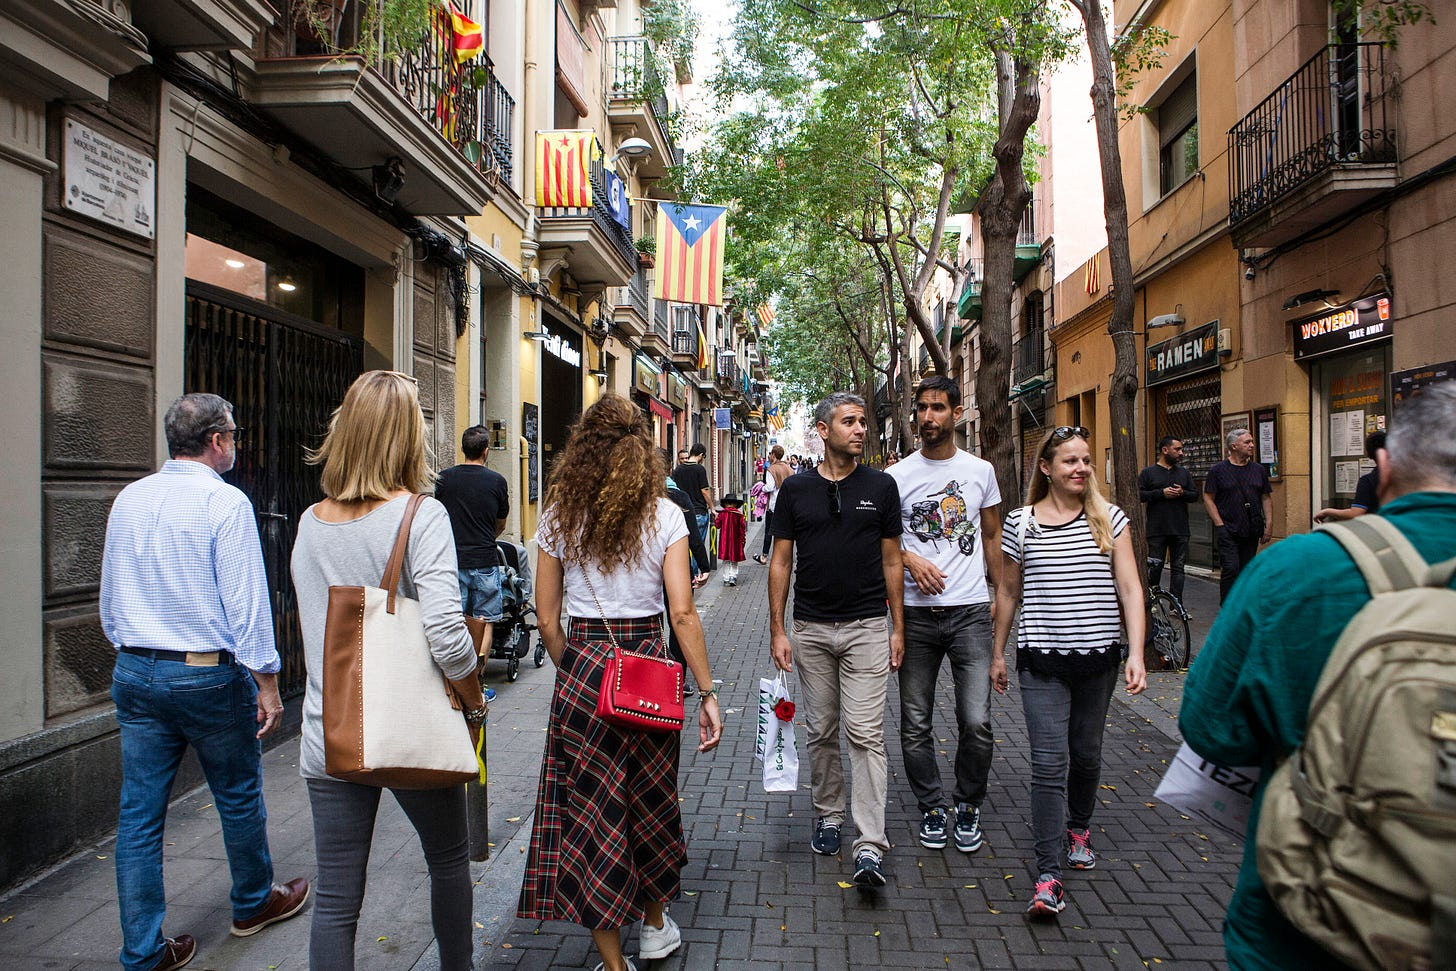 In the Gracia neighborhood superblock in Barcelona. (Picture: Maysun for Vox)